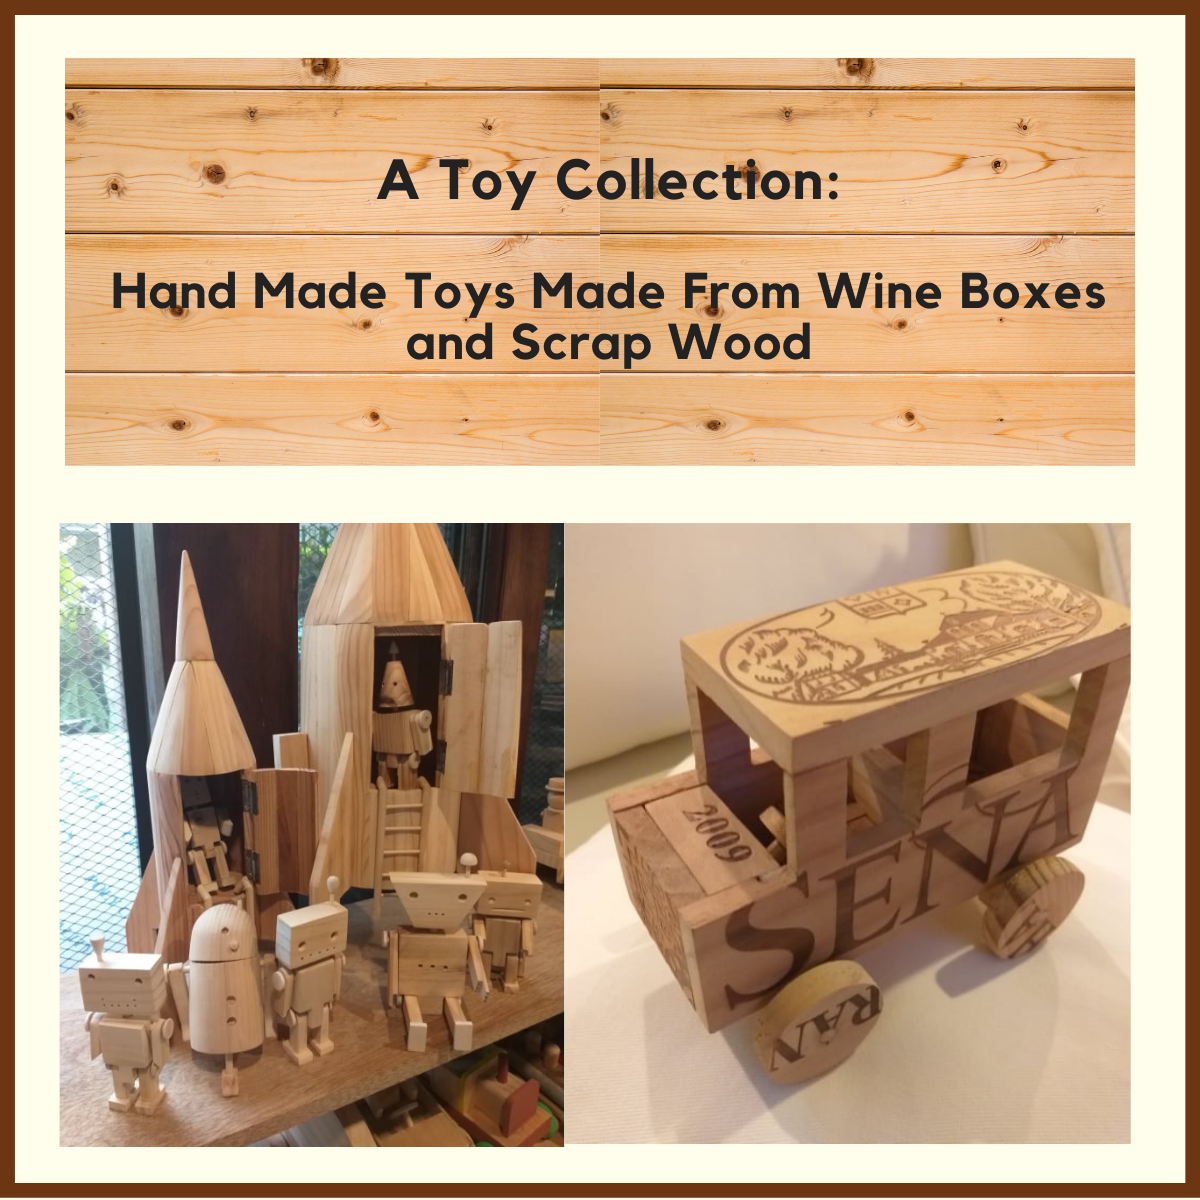 Hand Made Toys Made From Wine Boxes and Scrap Wood